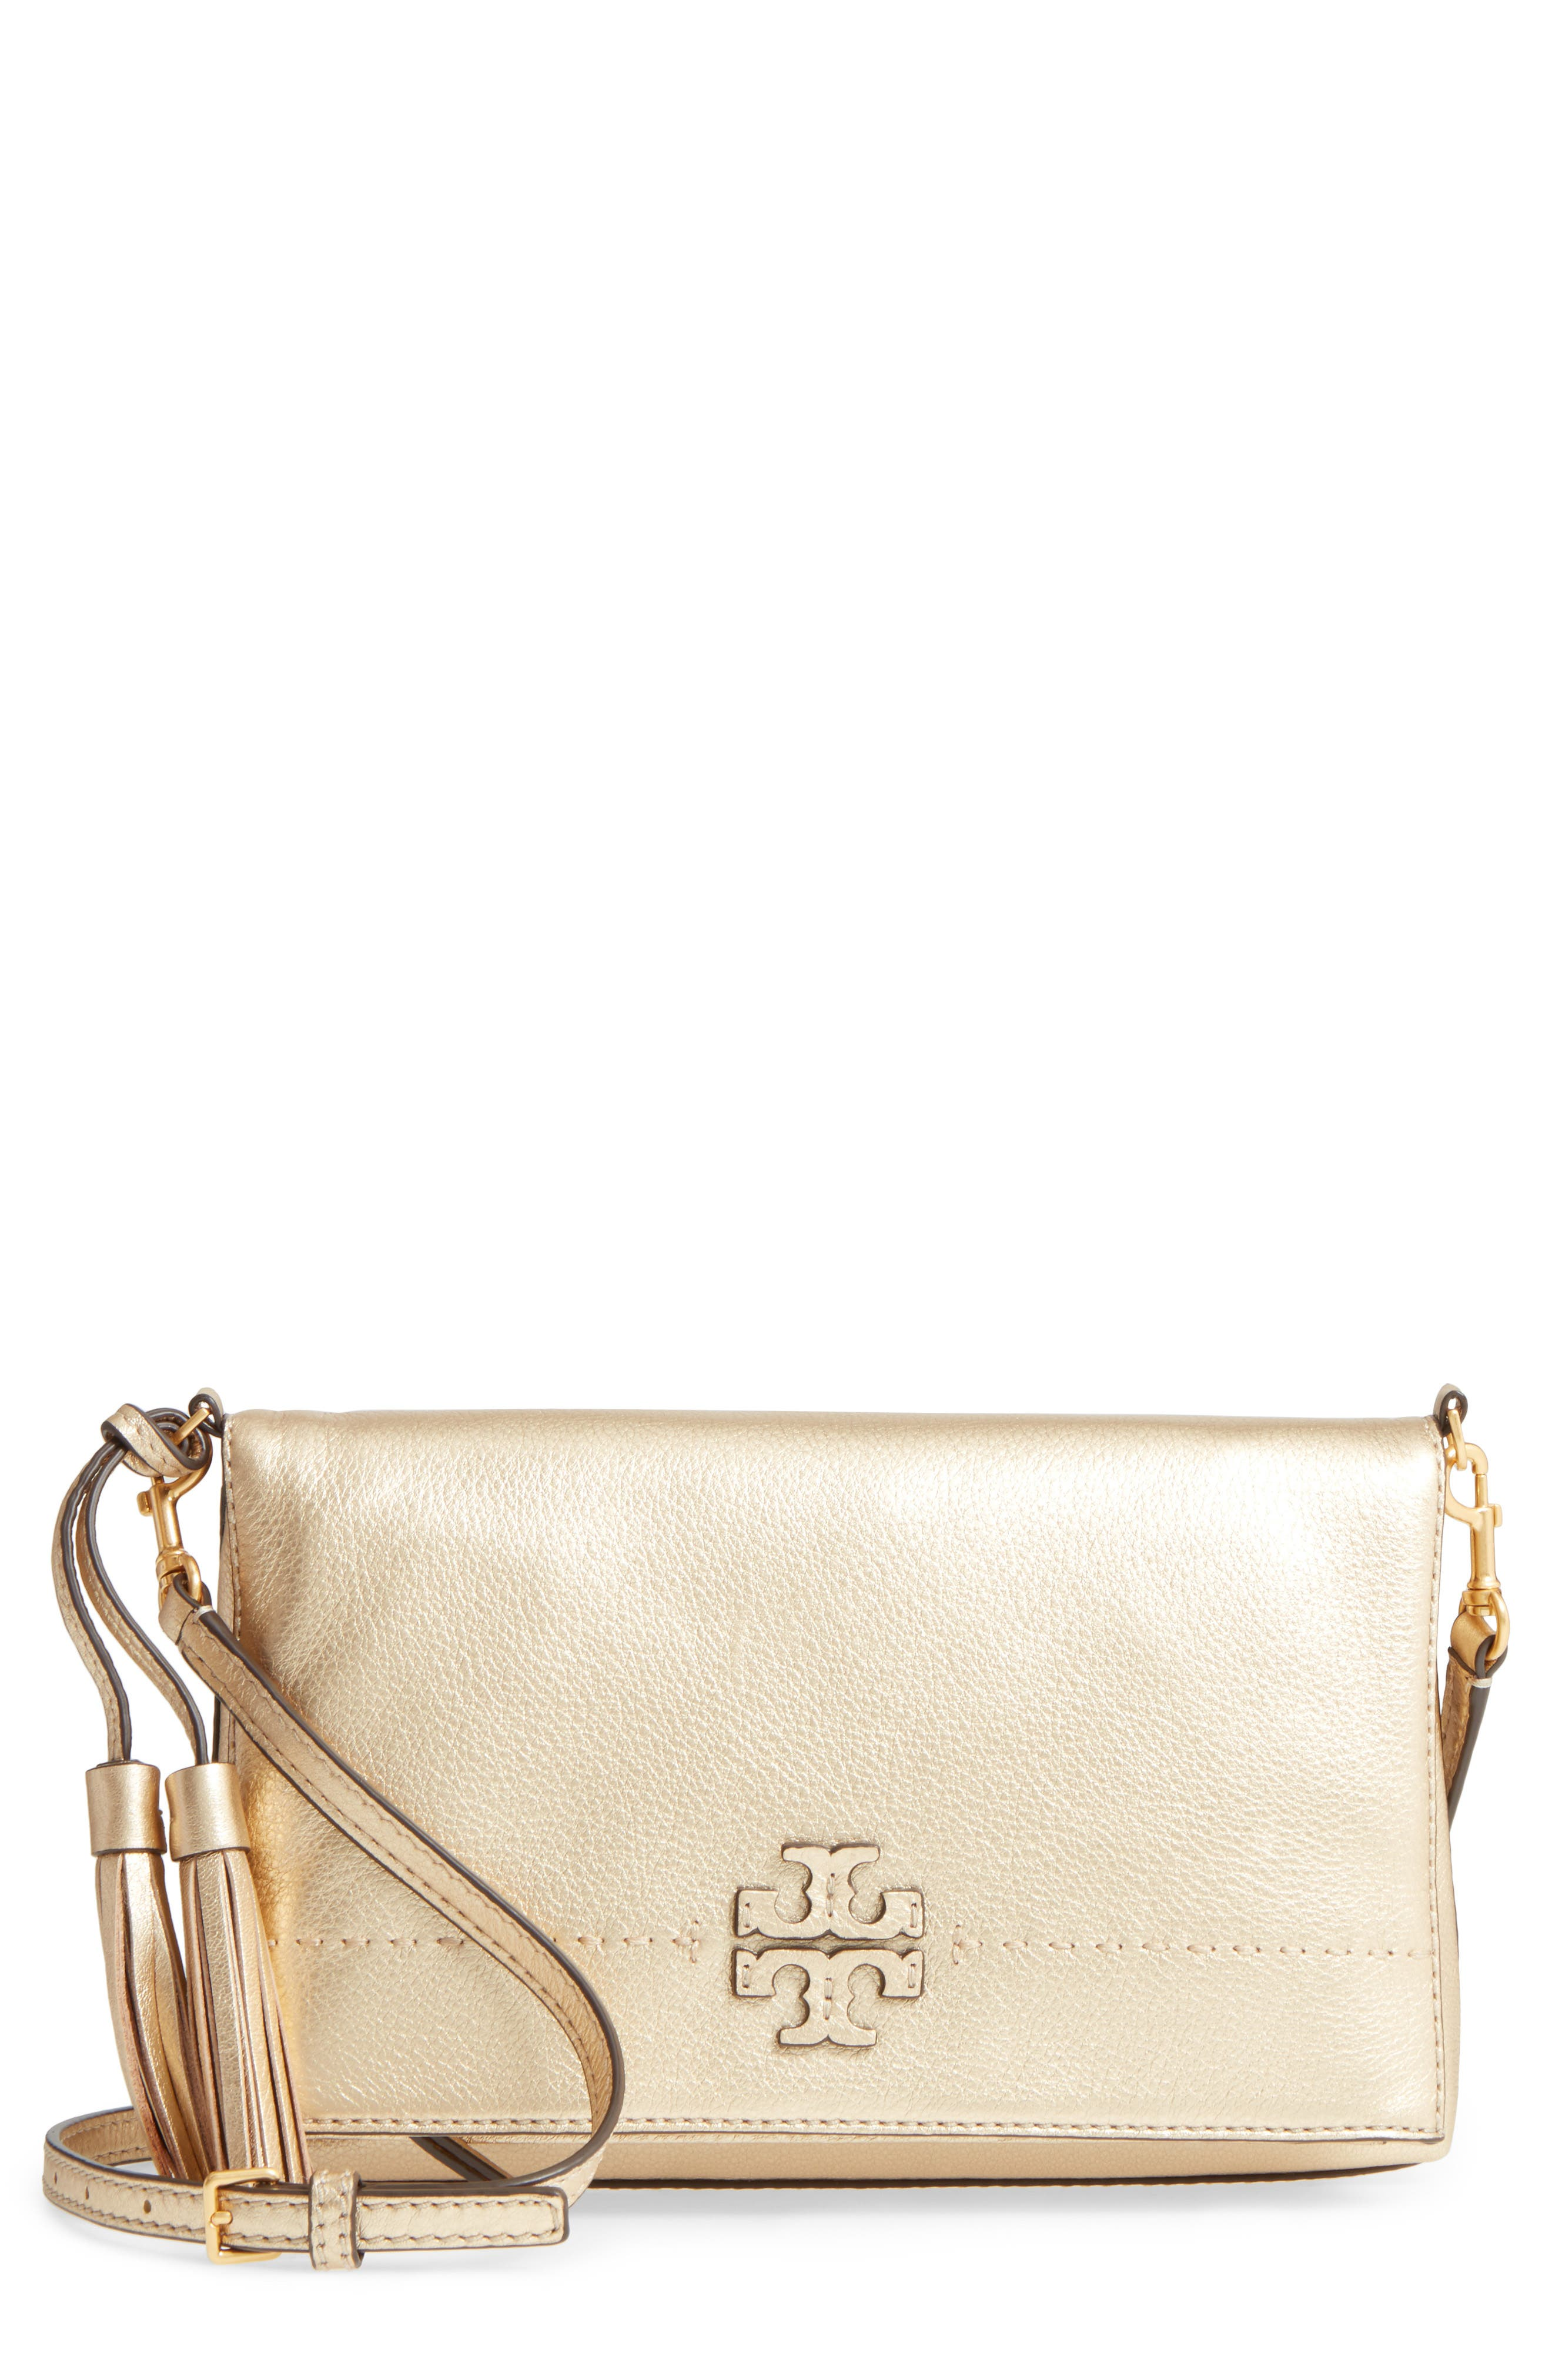 McGraw Metallic Leather Crossbody Bag,                         Main,                         color, Gold